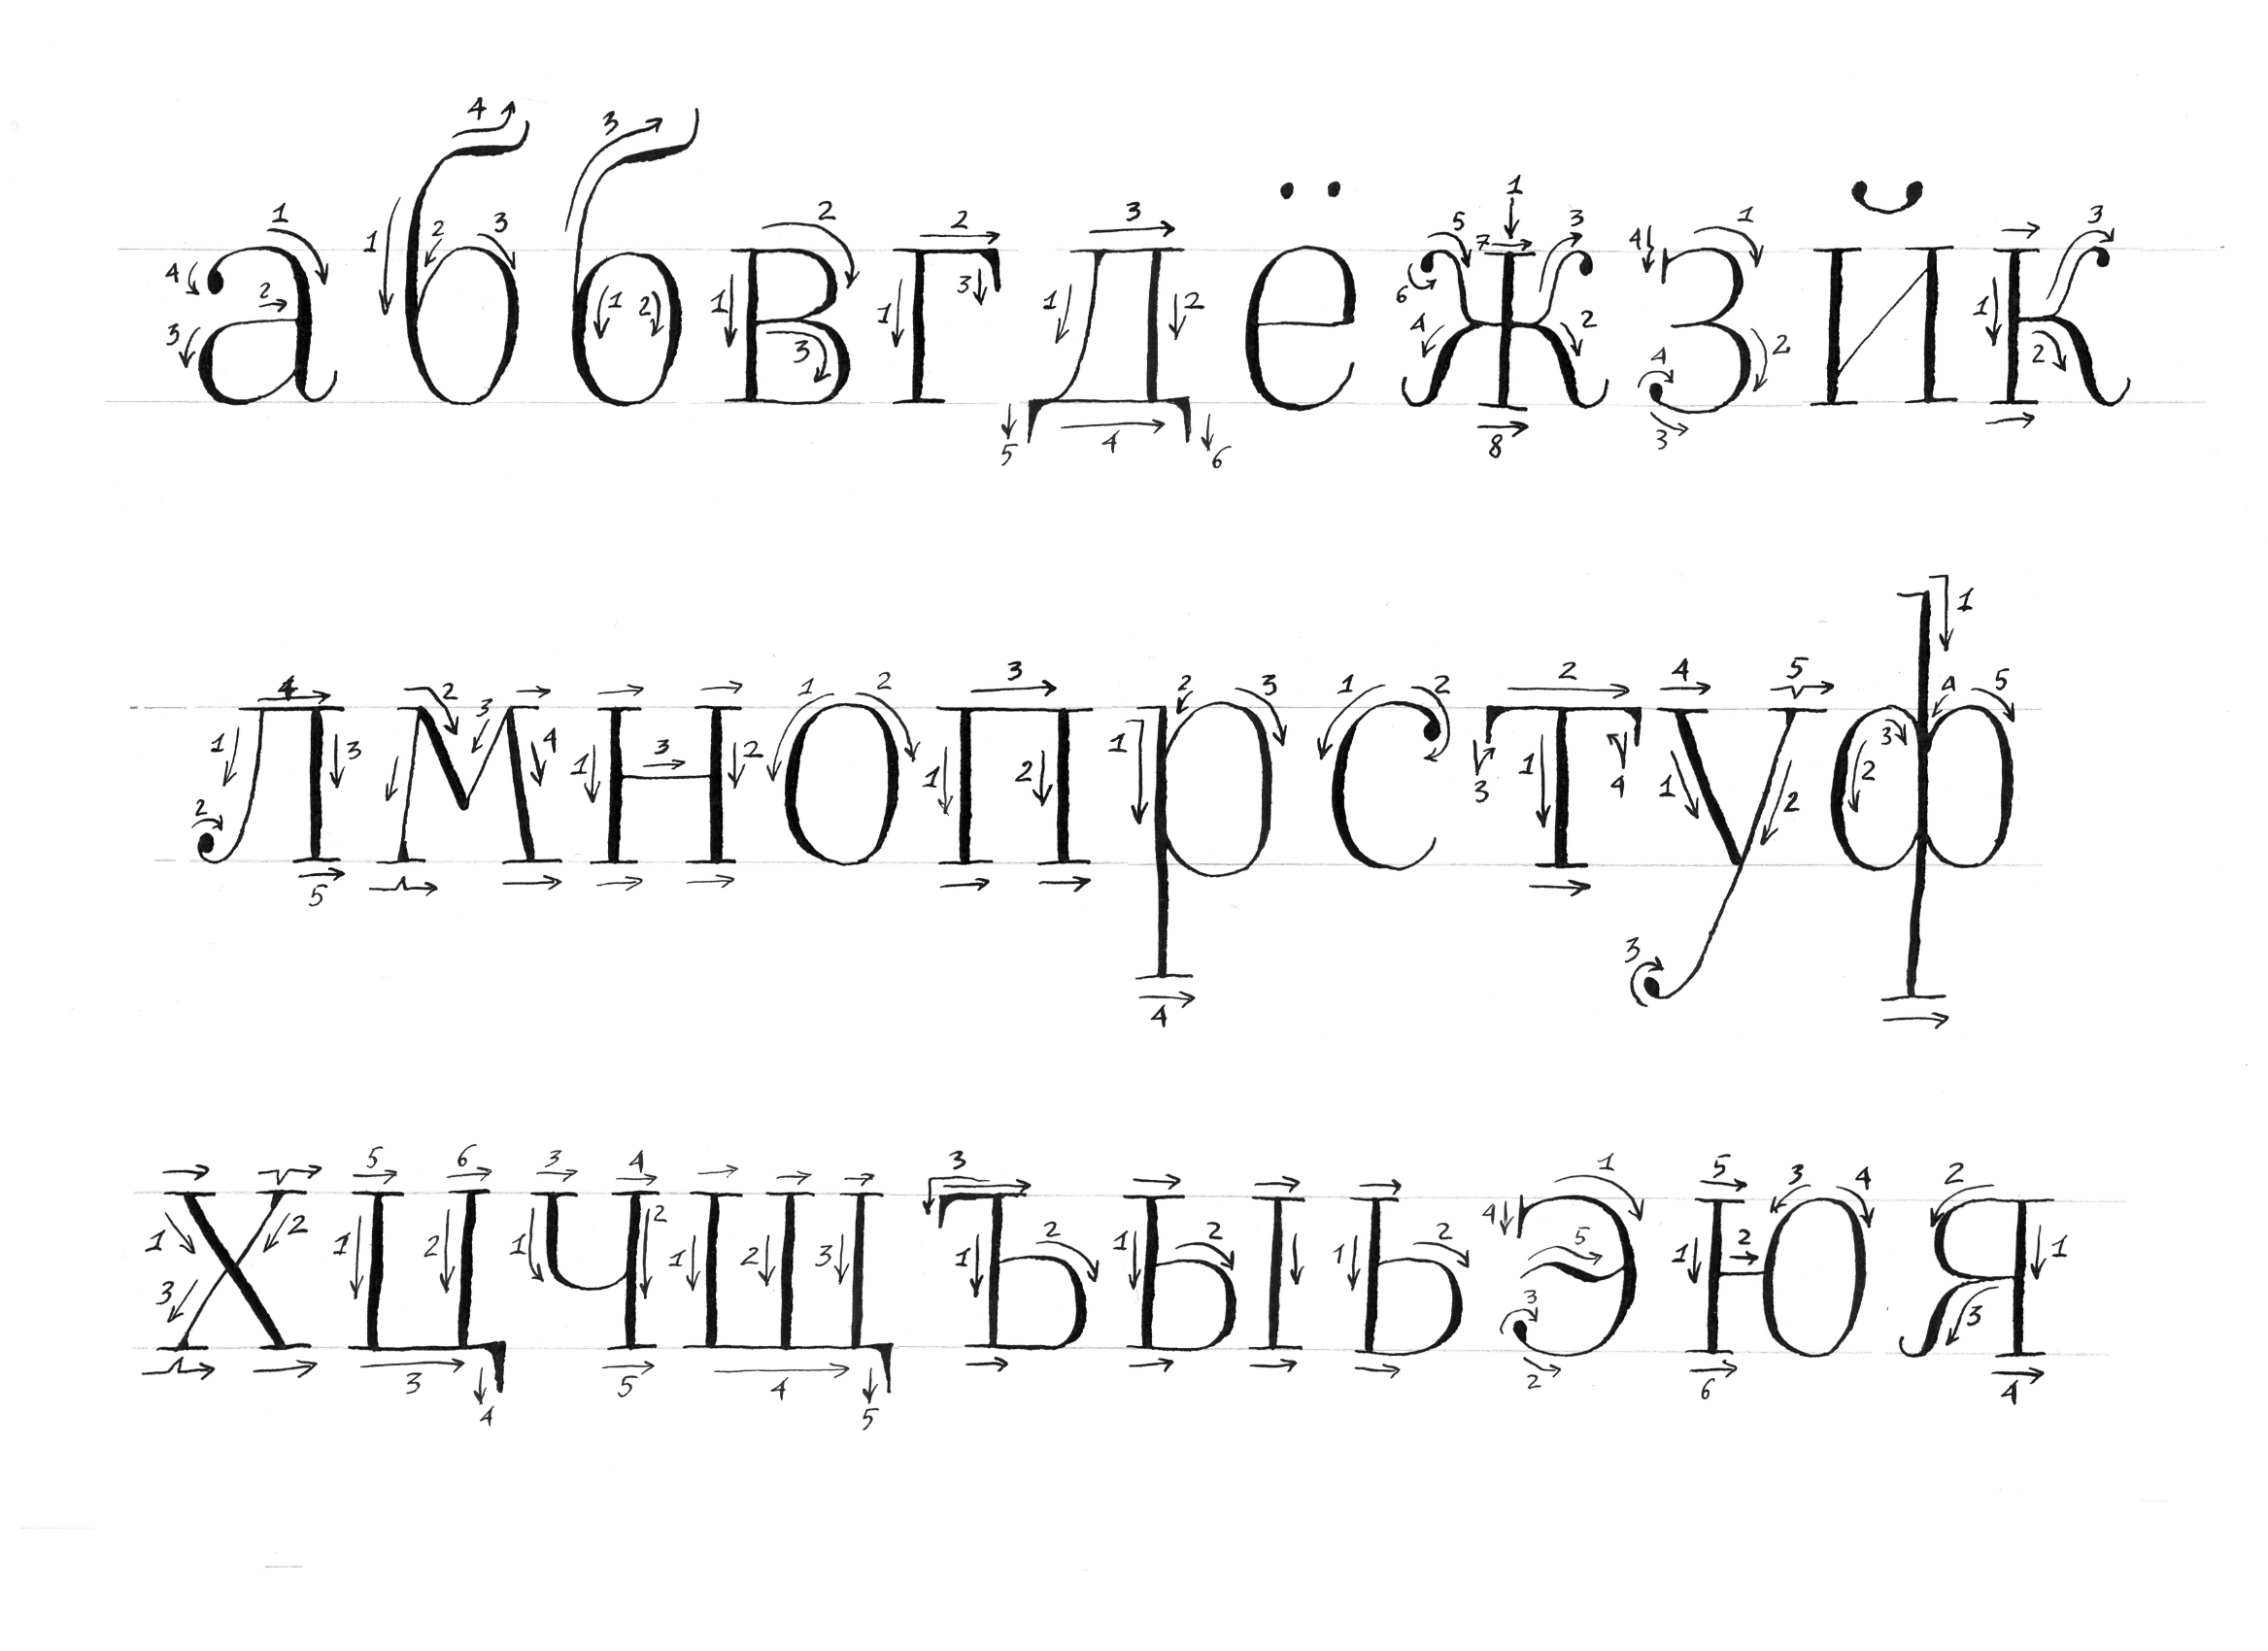 Cyrillic samples by Vera Evstafieva